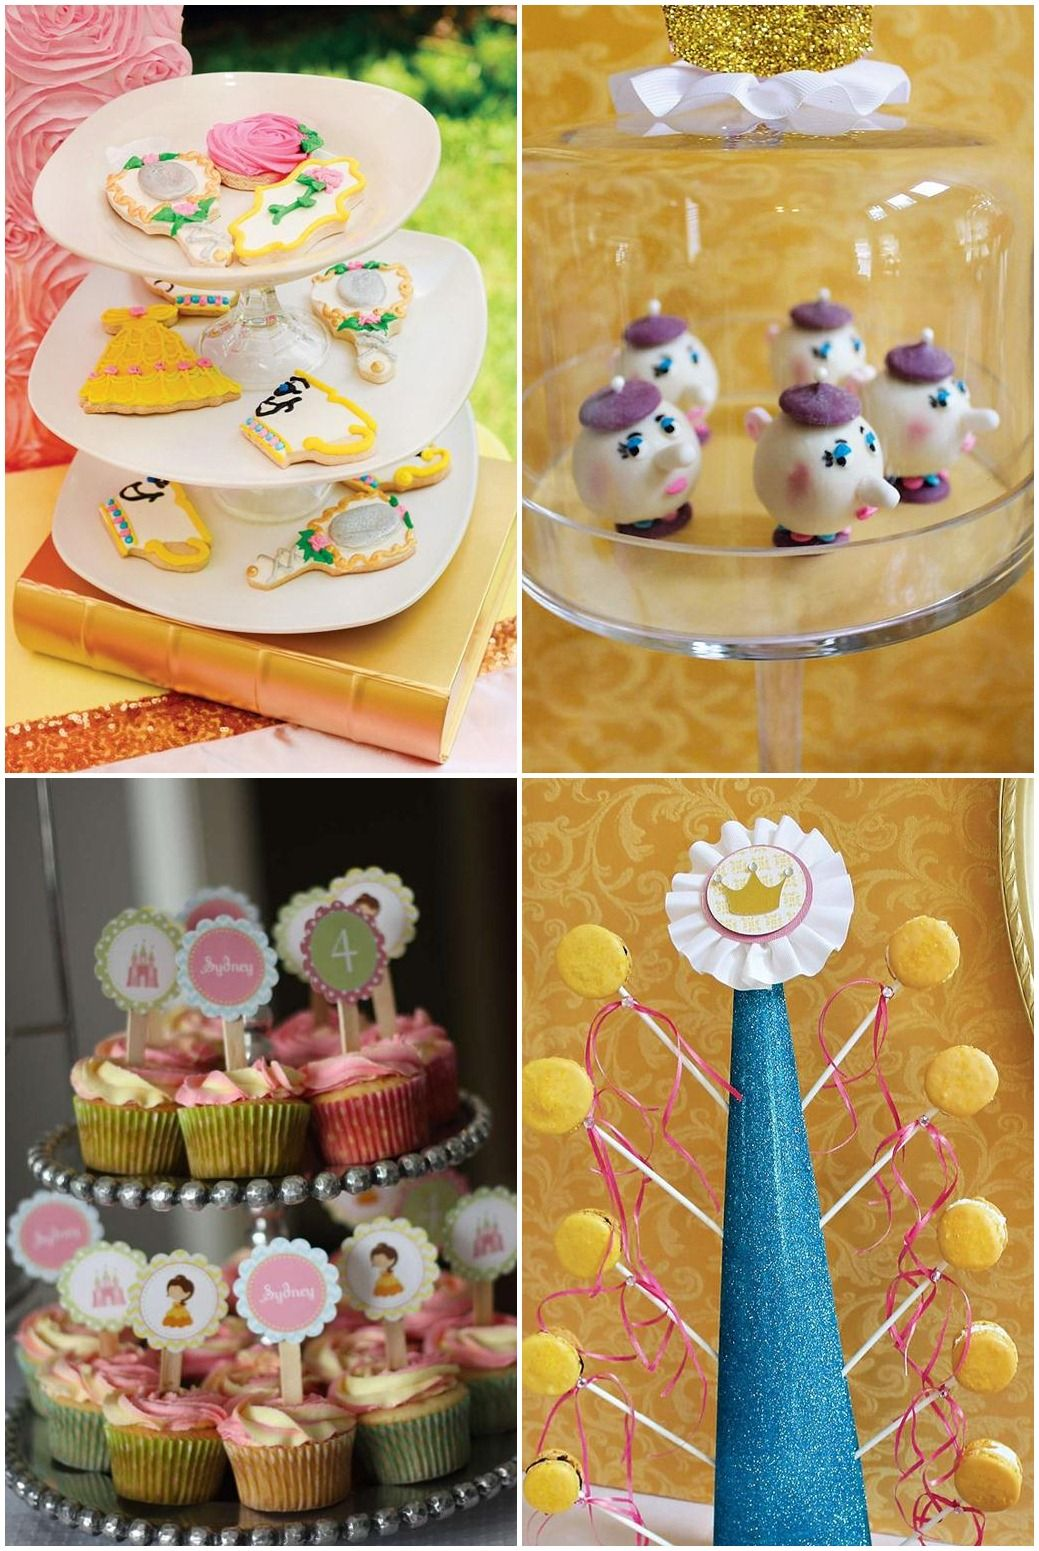 Princess Belle Party Decorations Princess Belle Birthday Party Food Ideas  Bells Birthday